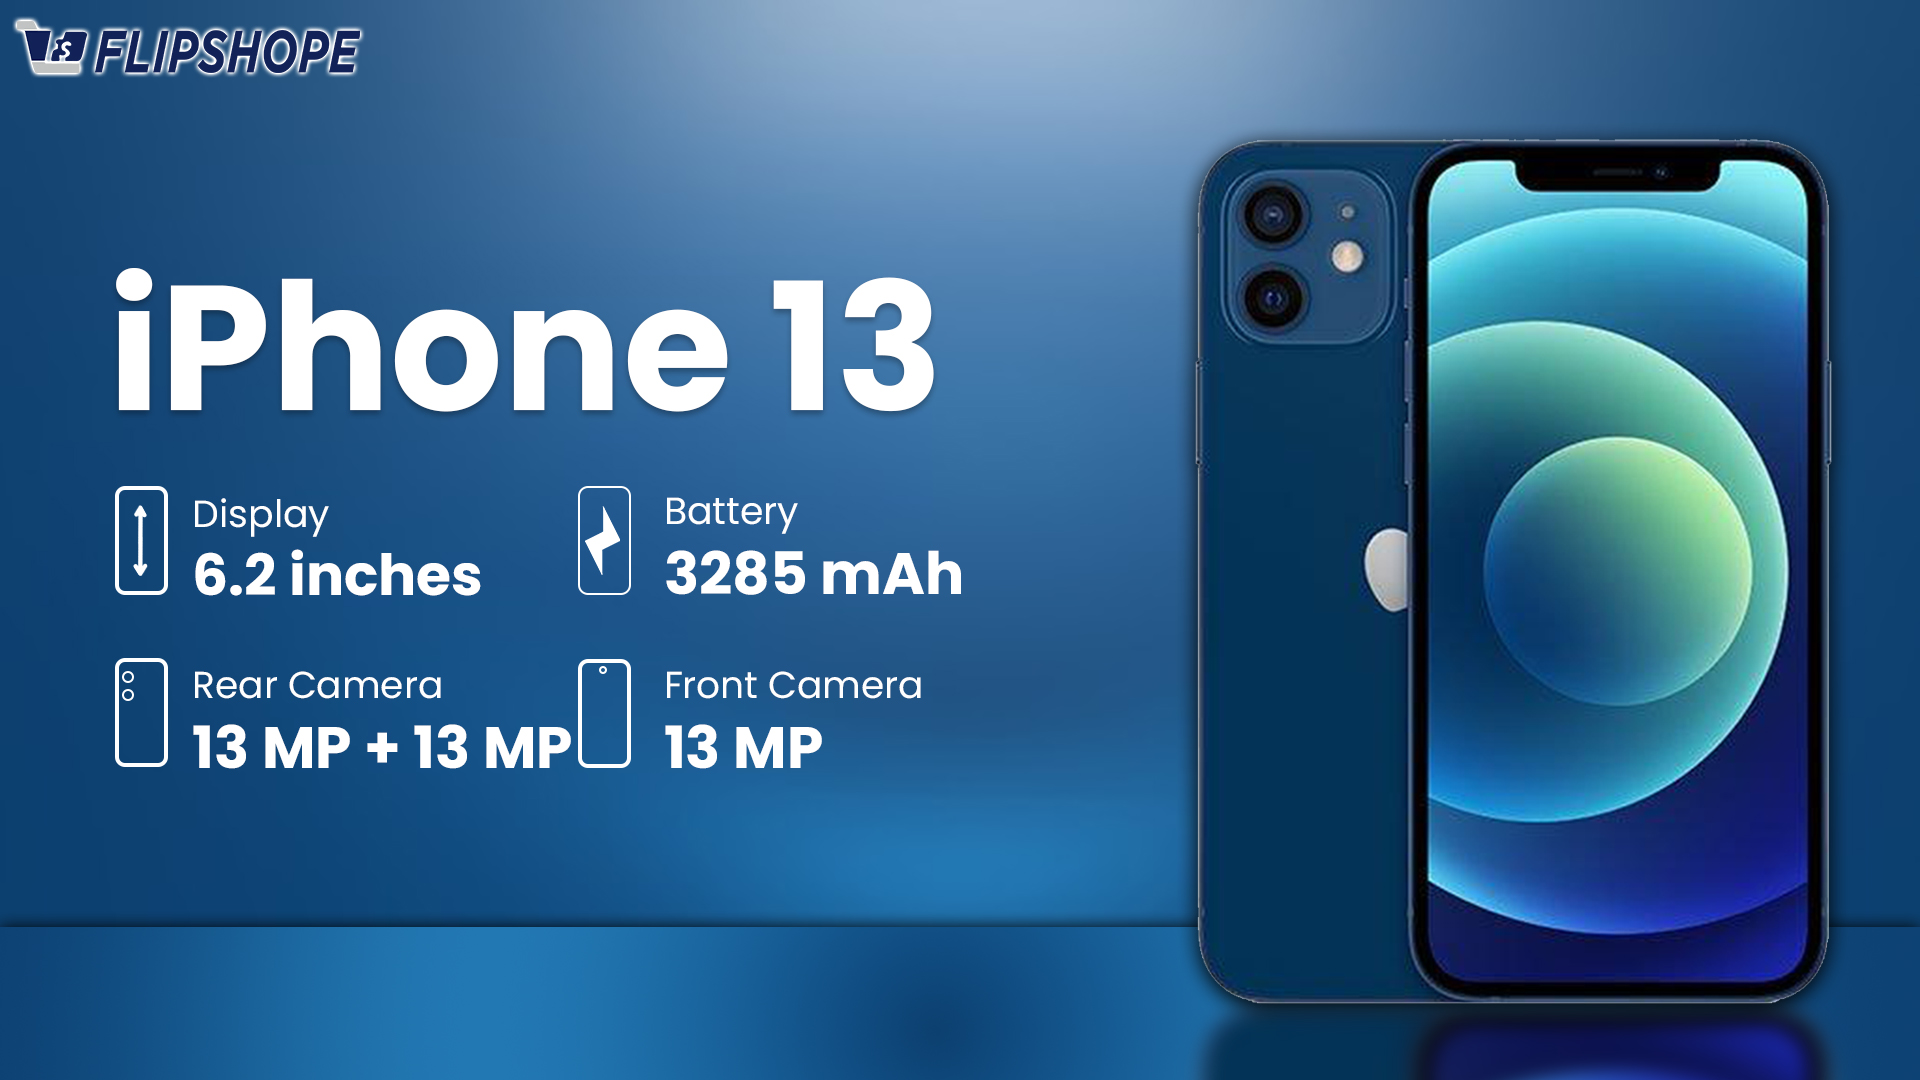 iPhone 13 specifications